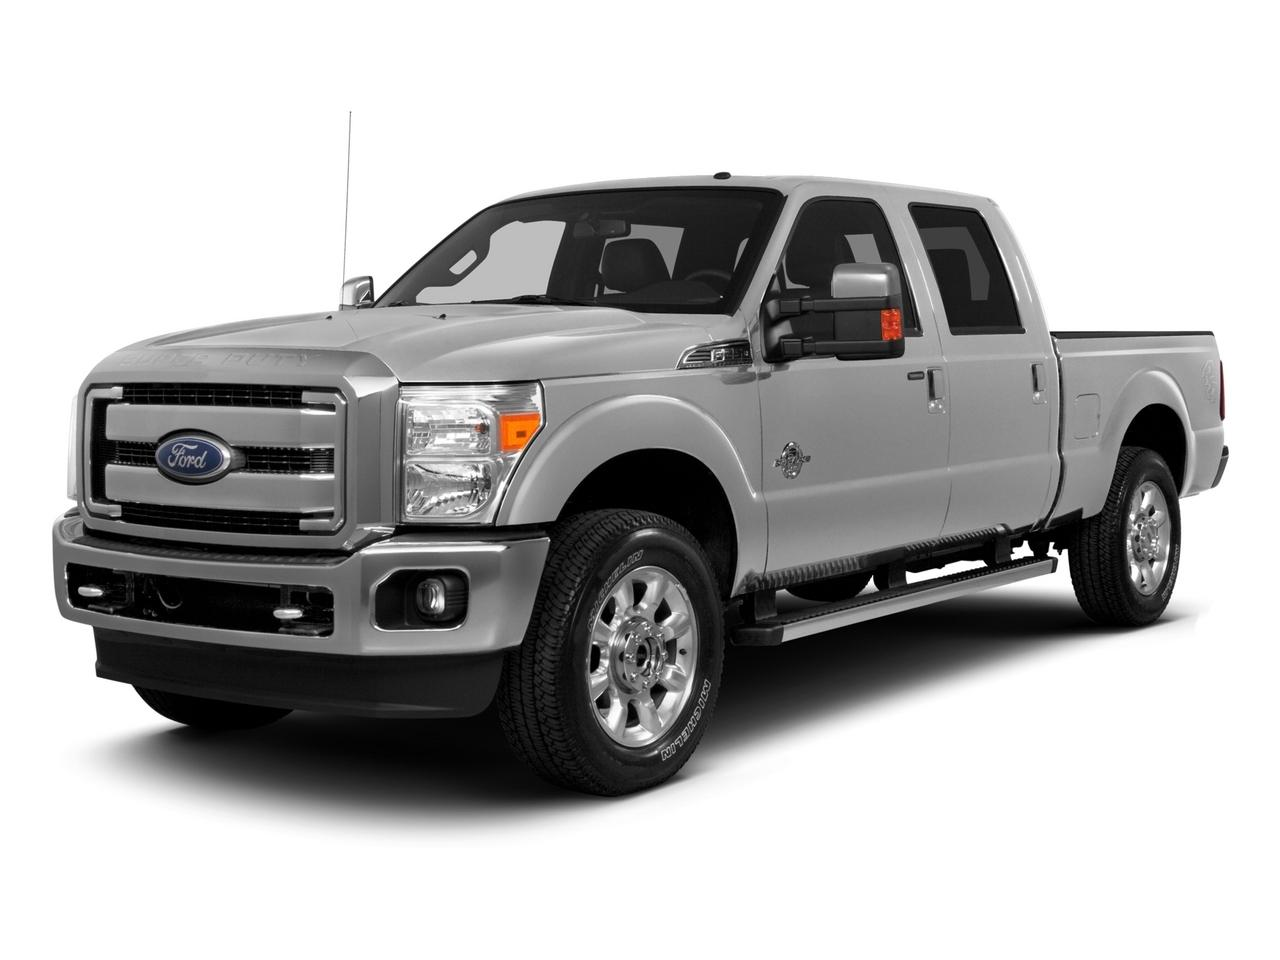 2015 Ford Super Duty F-250 SRW Vehicle Photo in Killeen, TX 76541